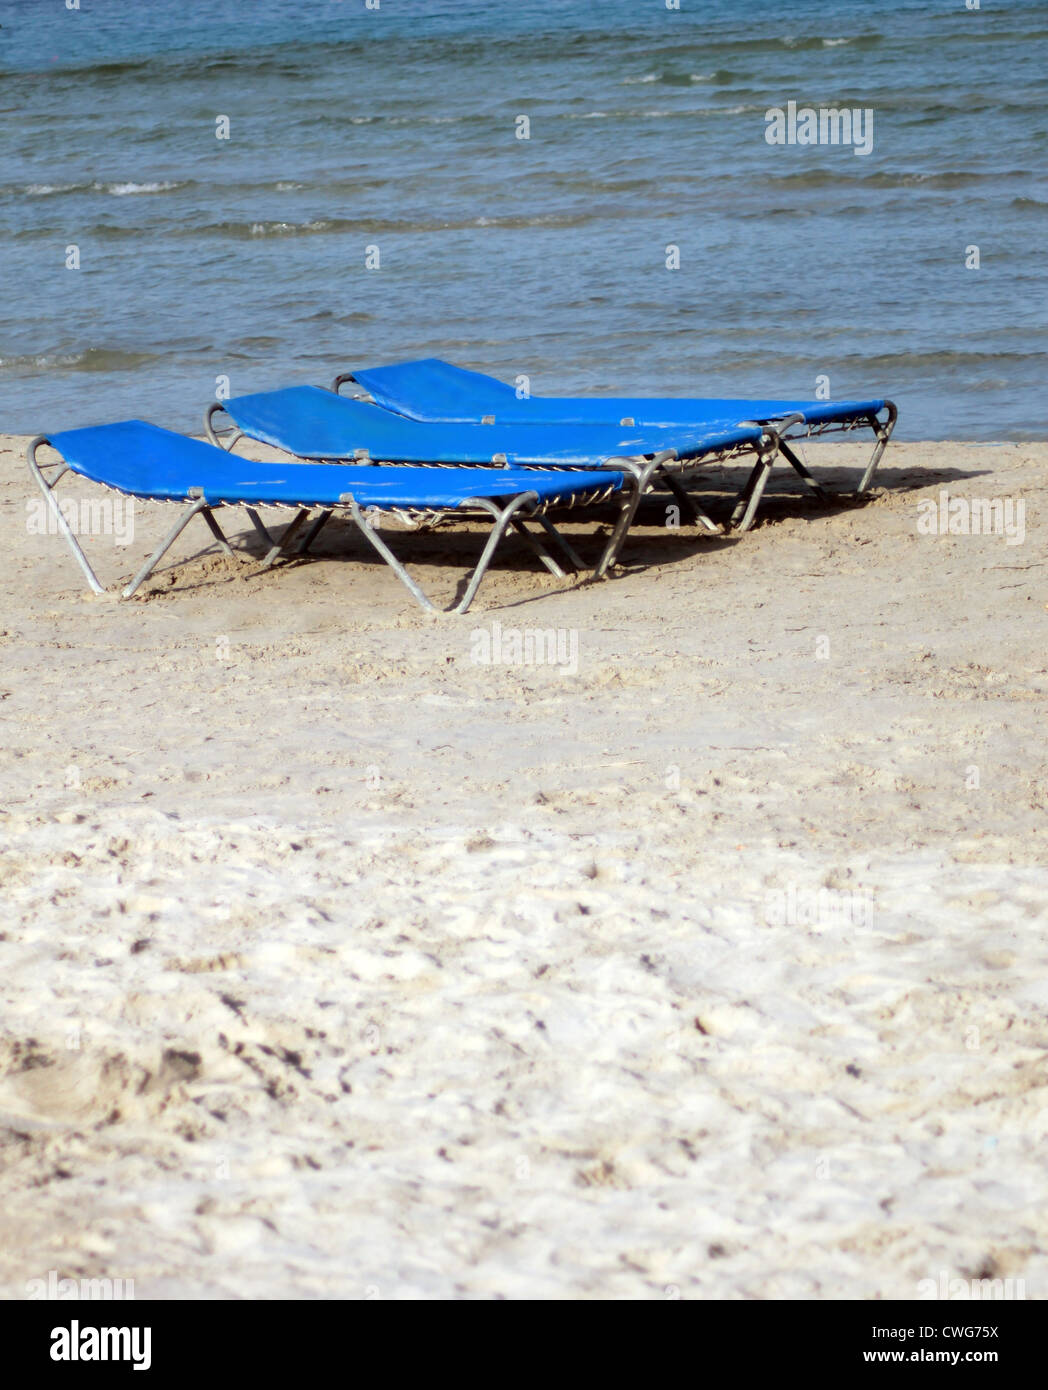 Sun loungers or beds on sandy beach in summer. - Stock Image